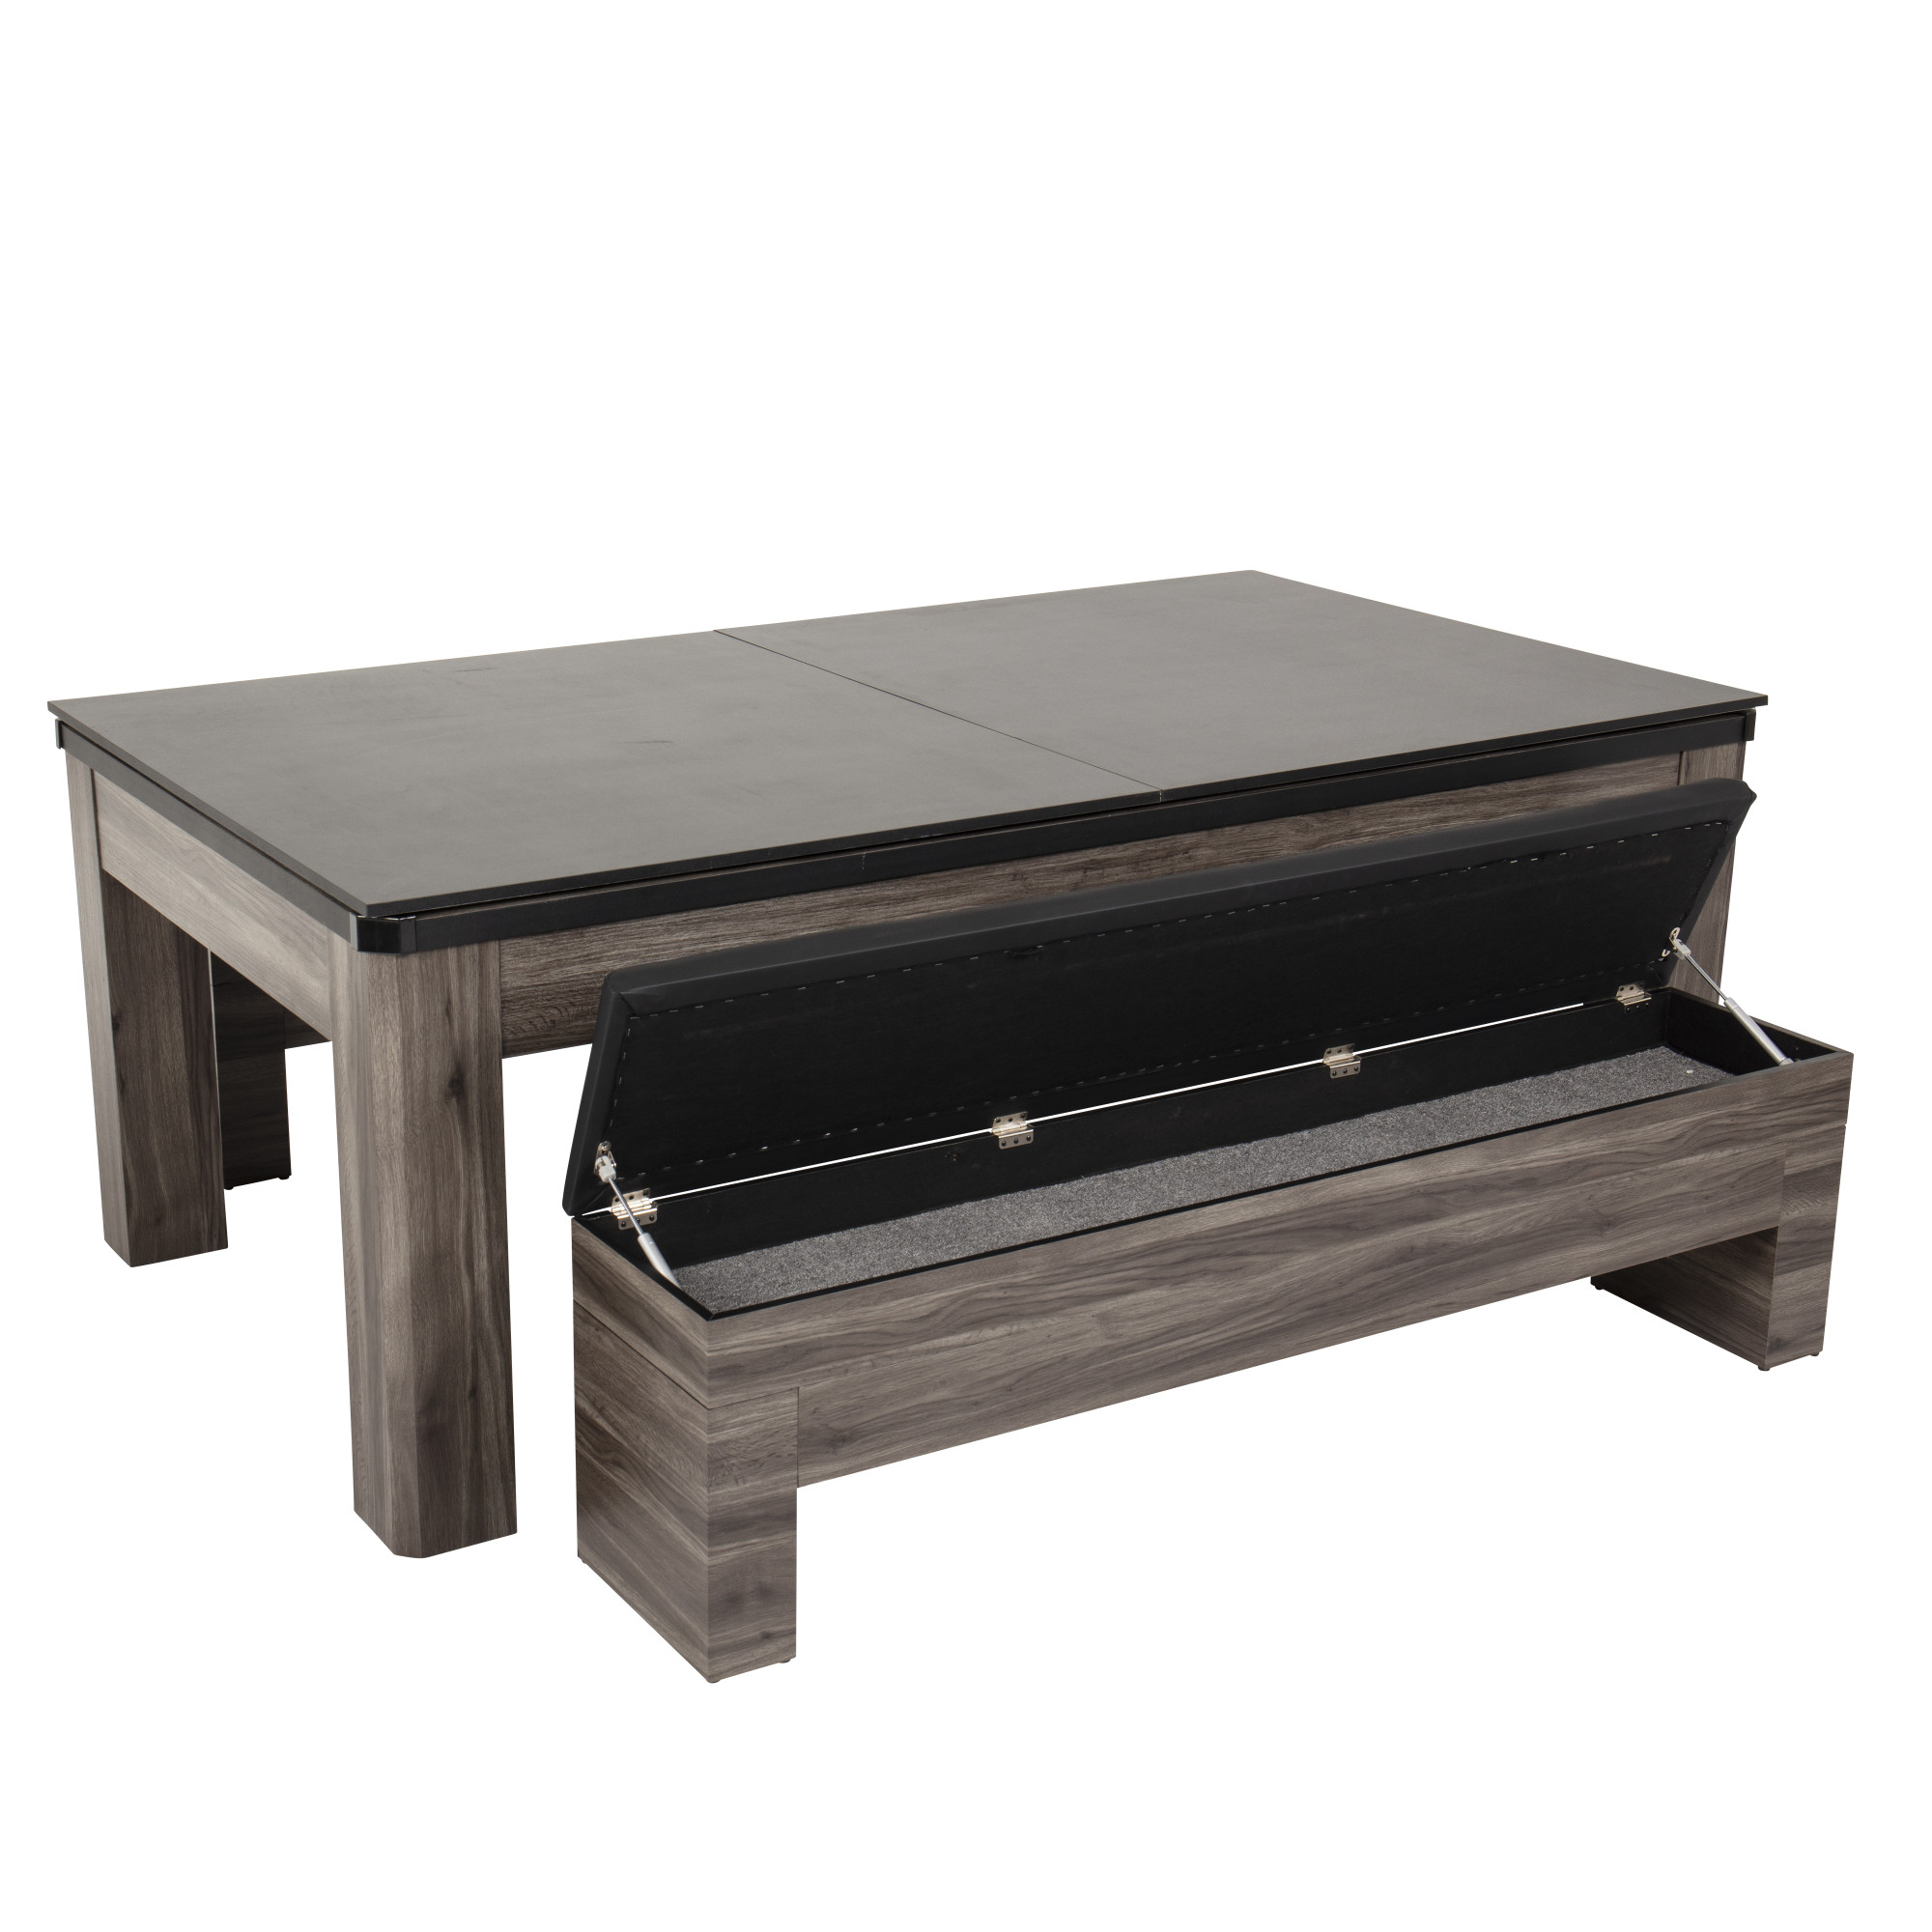 Atomic 7' Hampton 3-in-1 Combination Table Includes ...